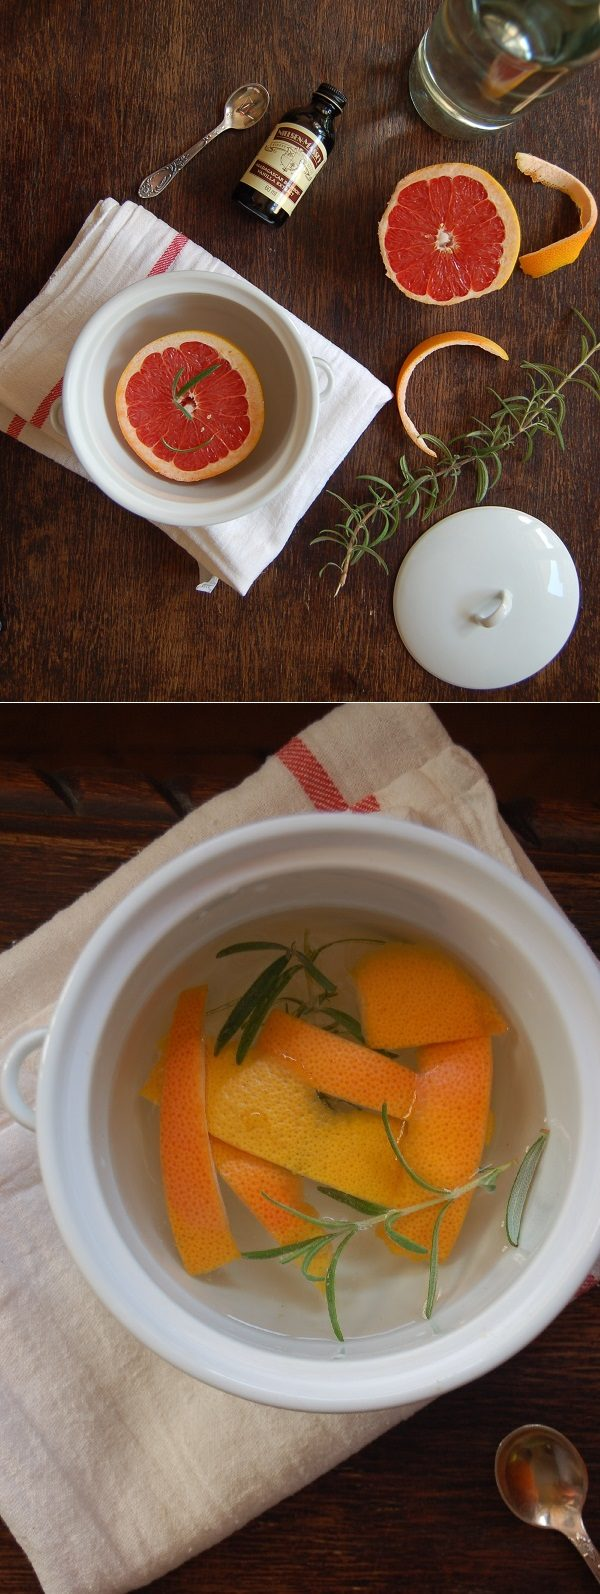 "Grapefruit might not be what you'd think of when making potpourri, but this <a href=""http://diana212m.blogspot.com/2014/10/the-perfect-early-fall-simmering.html"" target=""_blank"">simple recipe</a> is proof that just about any fruit can leave your home smelling wonderful."